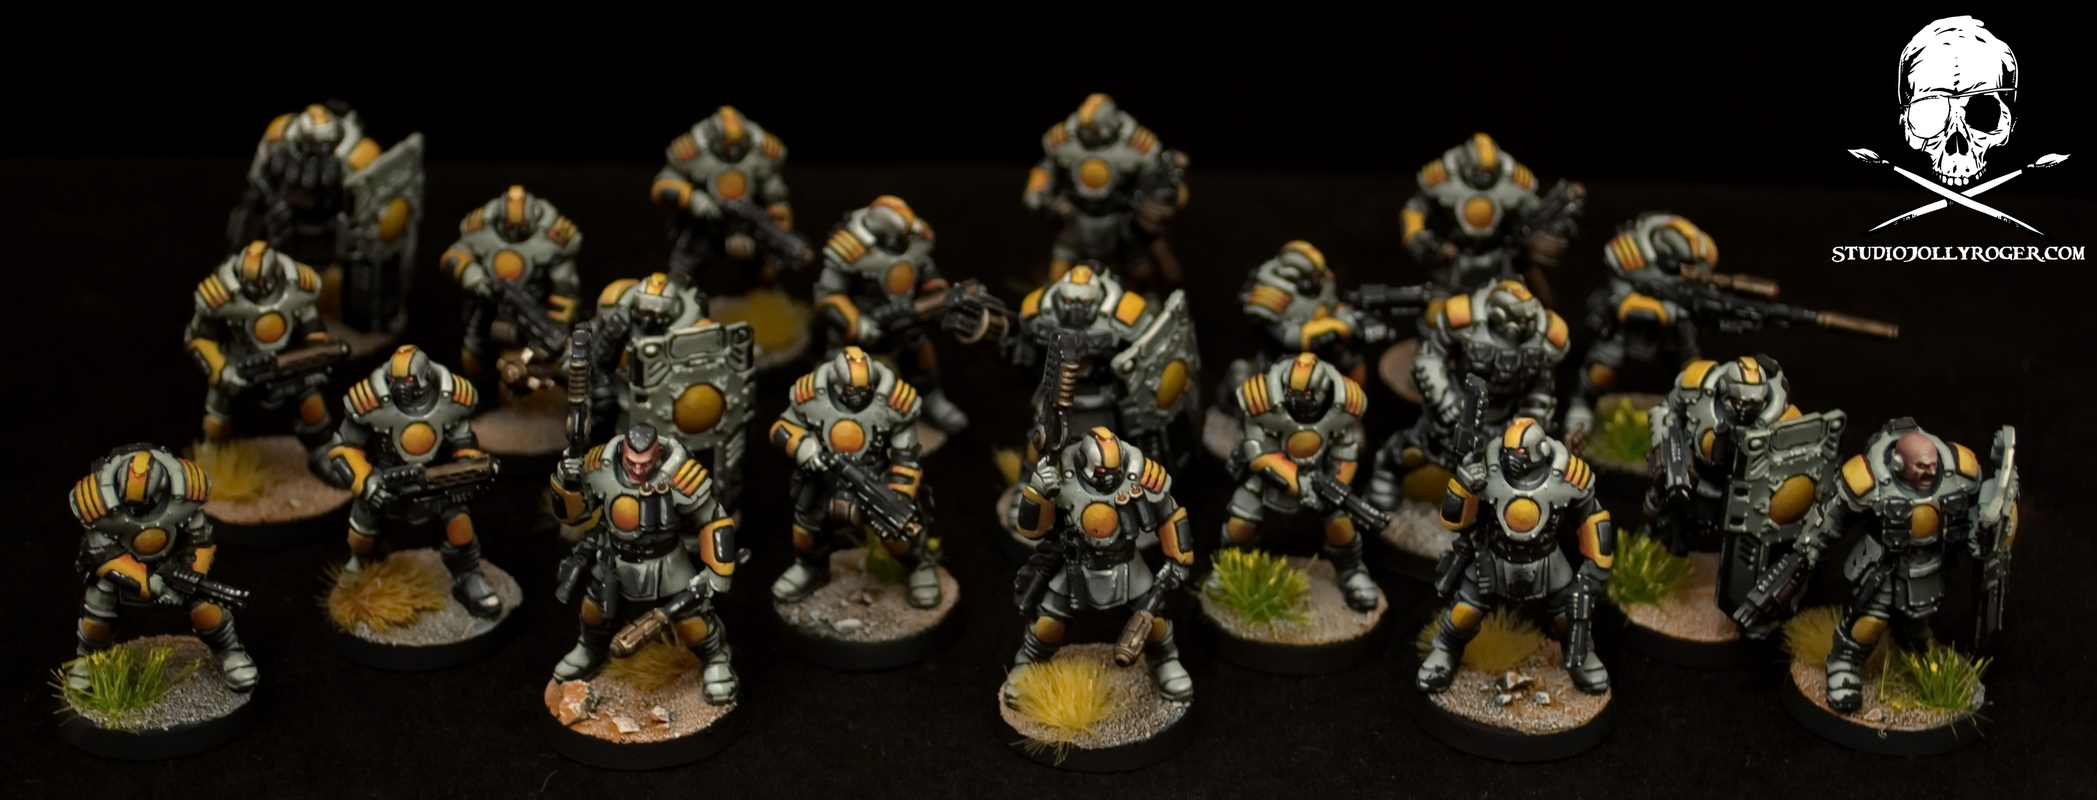 Imperial Fists HQ